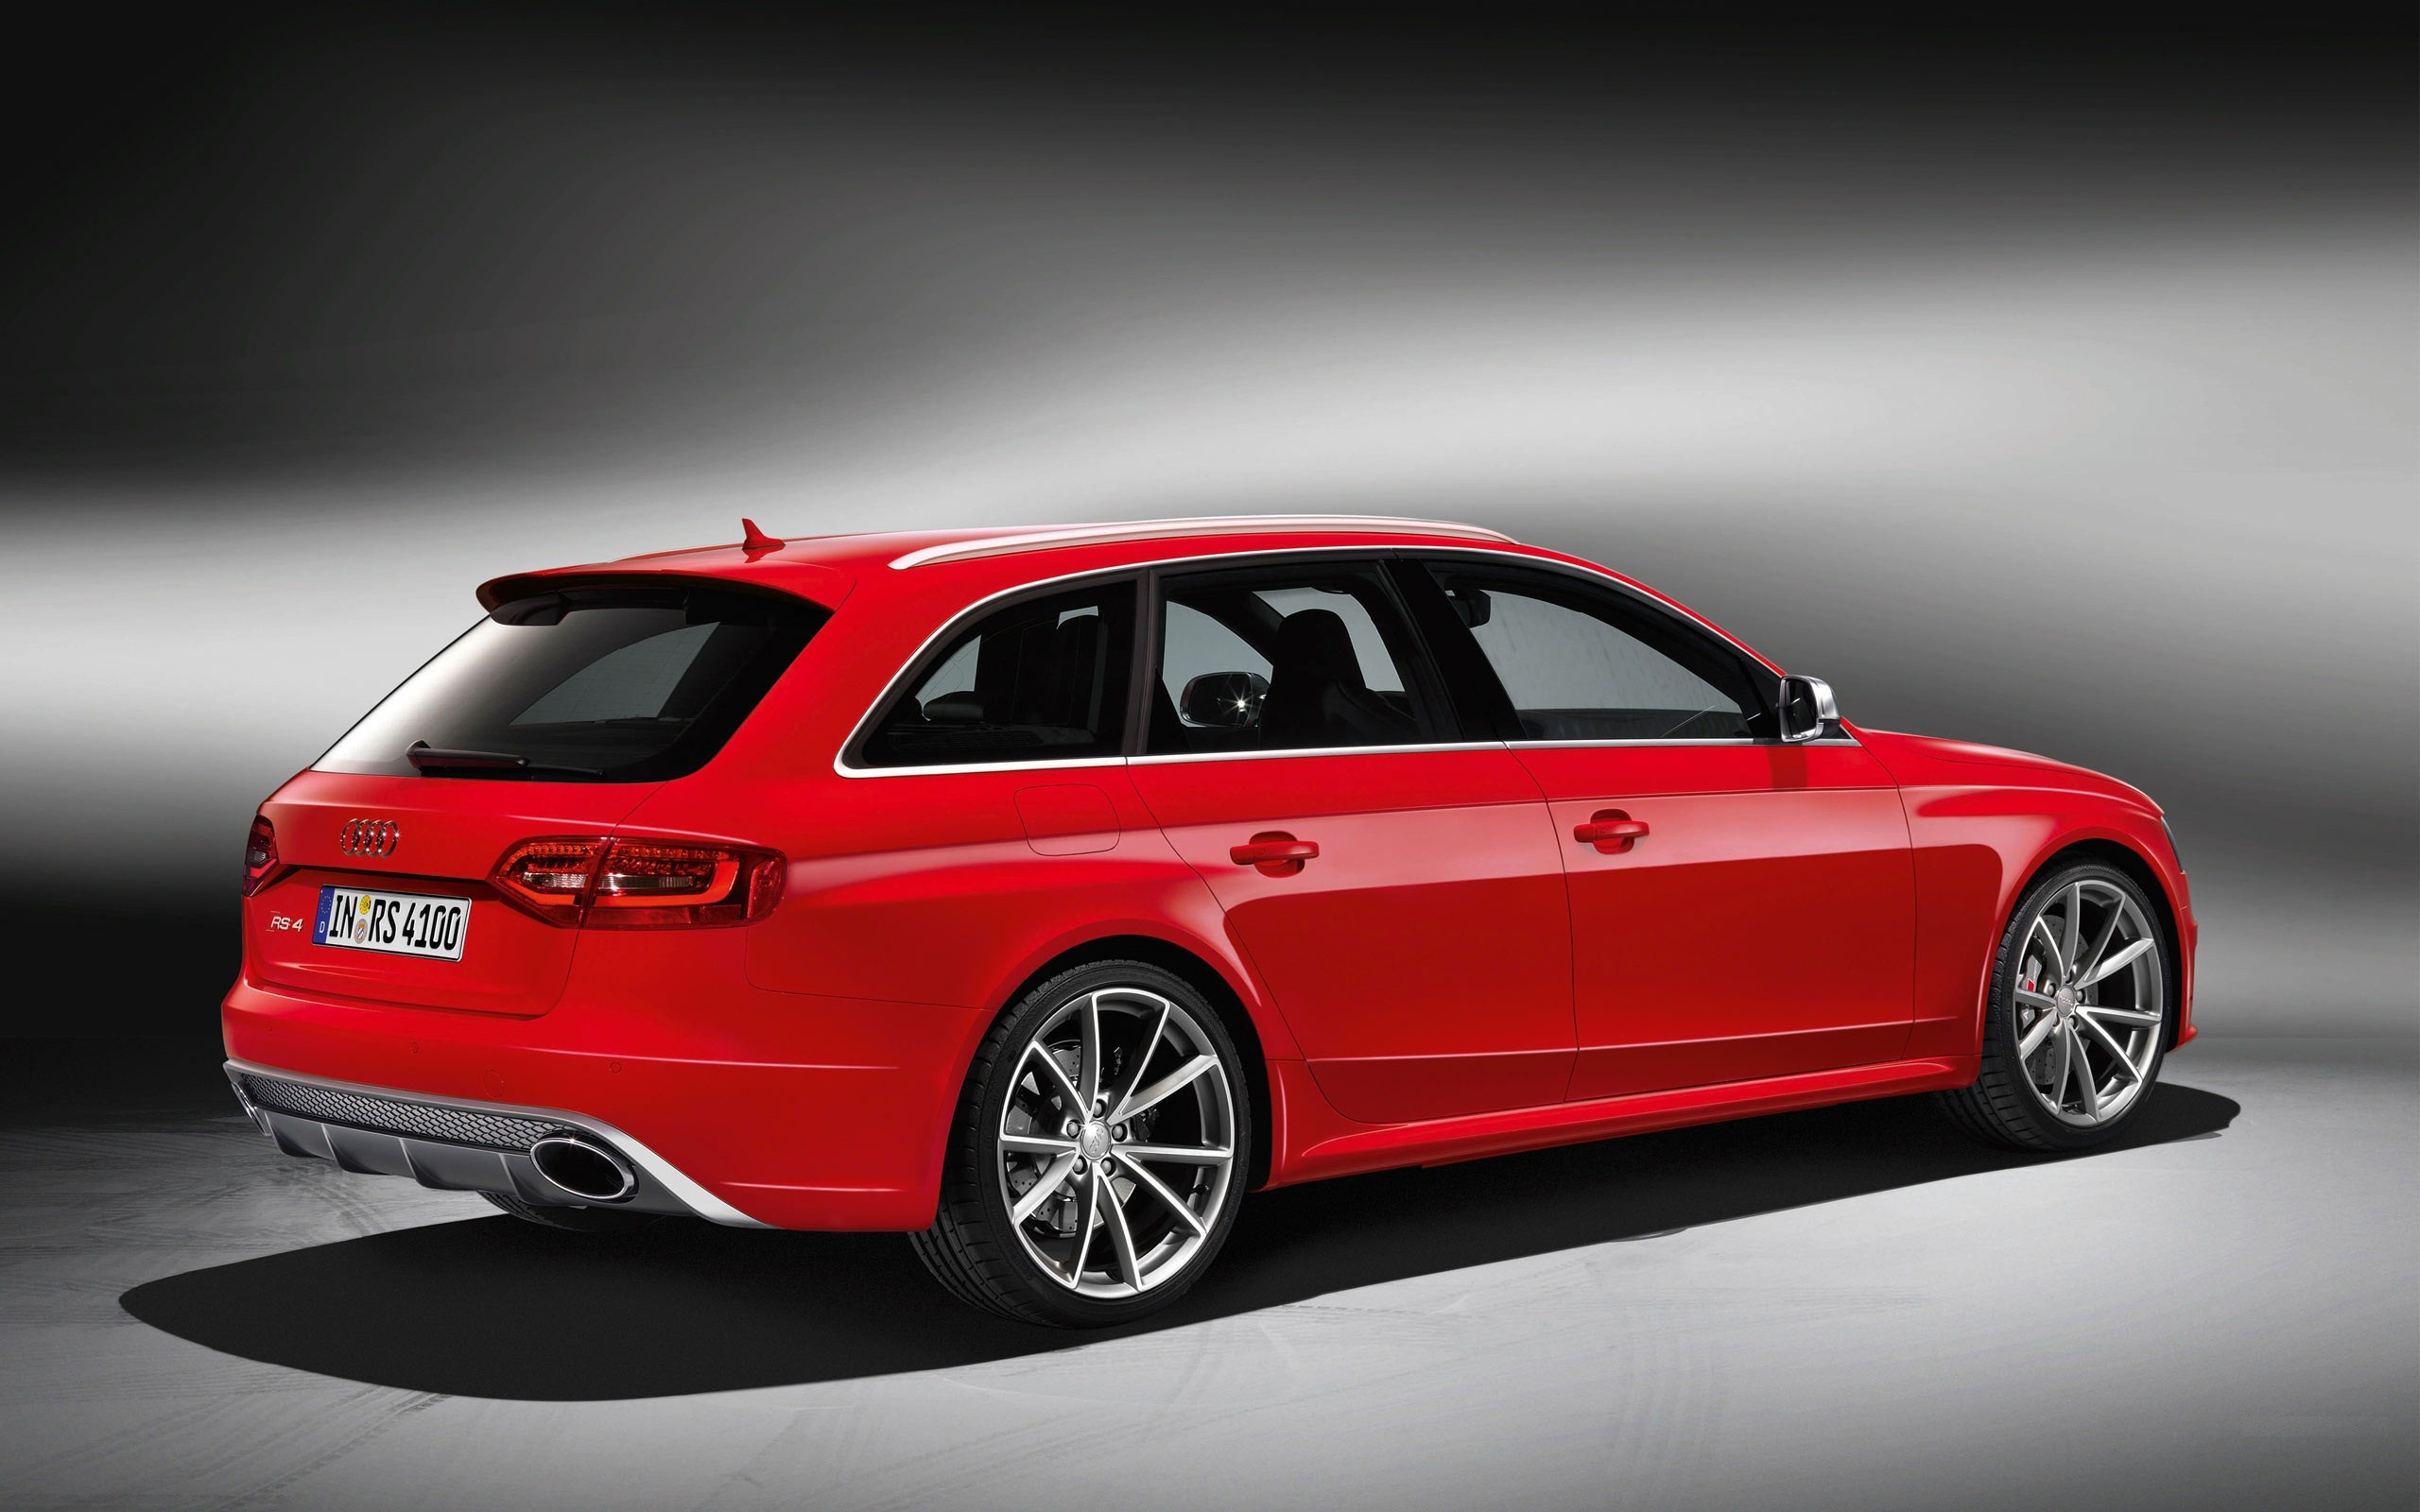 Hd Wallpapers 2560x1600 Red Cars Avant Vehicles Sports Cars Audi Rs4 Wallpaper